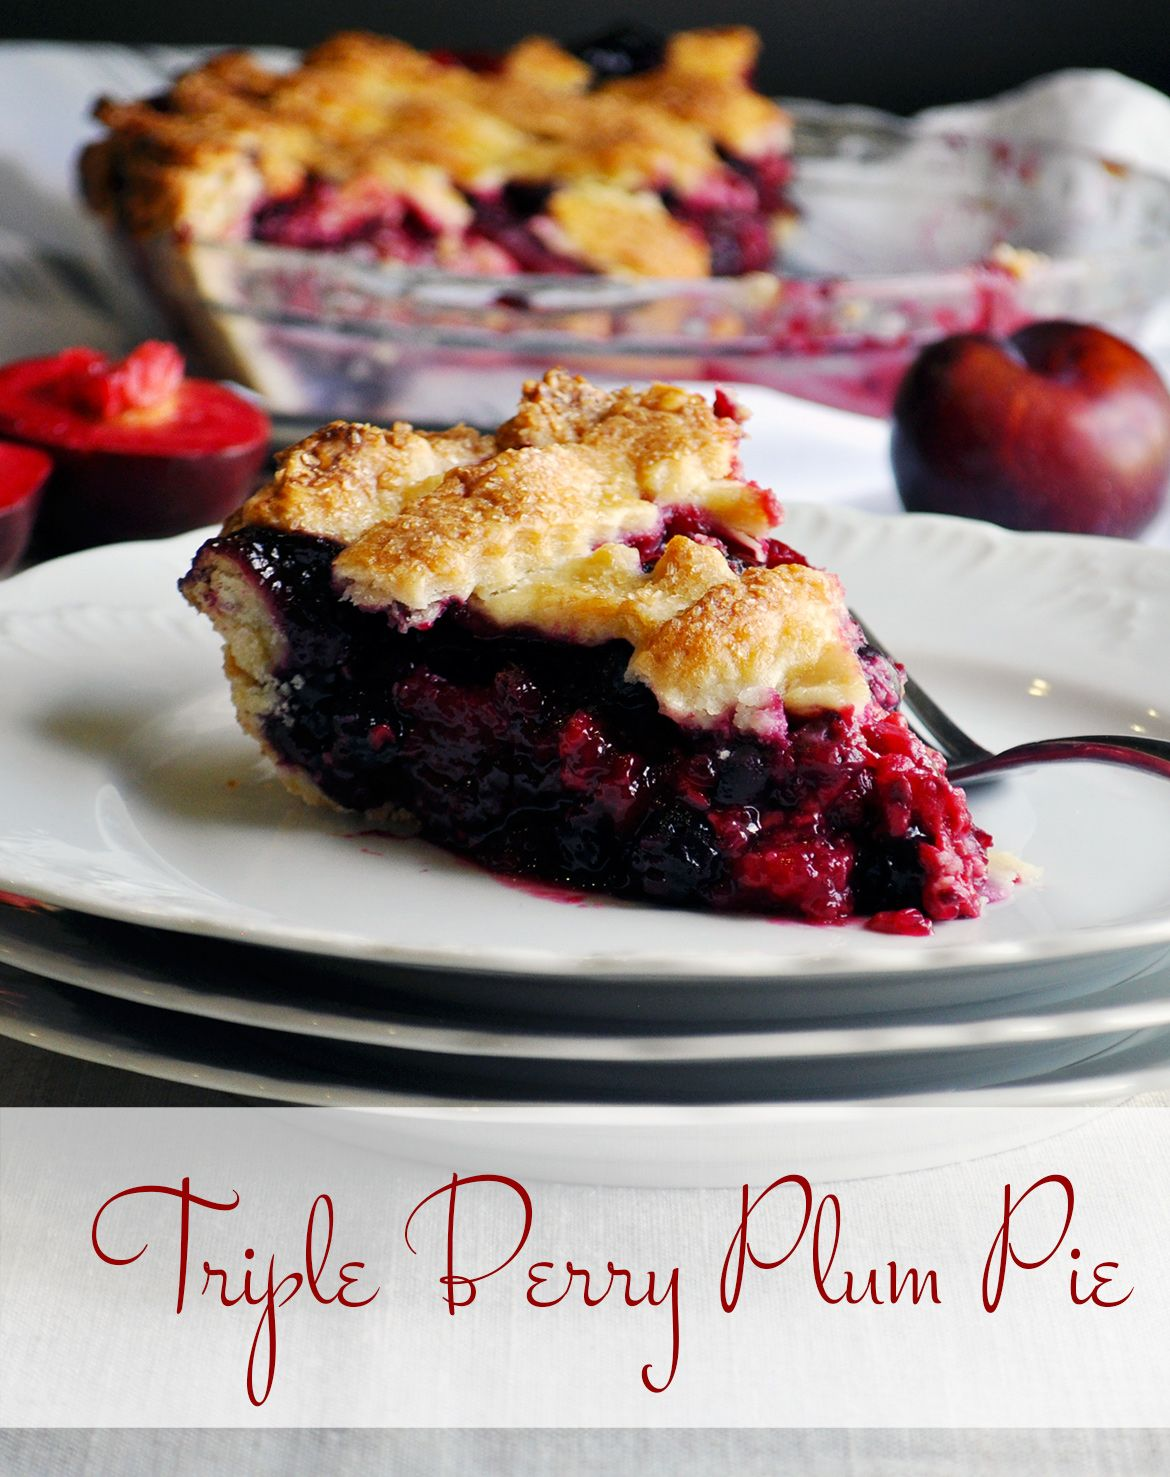 Triple berry plum pie, with blueberries, blackberries, raspberries and sweet purple plums inside a flaky lattice topped pie shell, is the perfect summer fruit dessert.